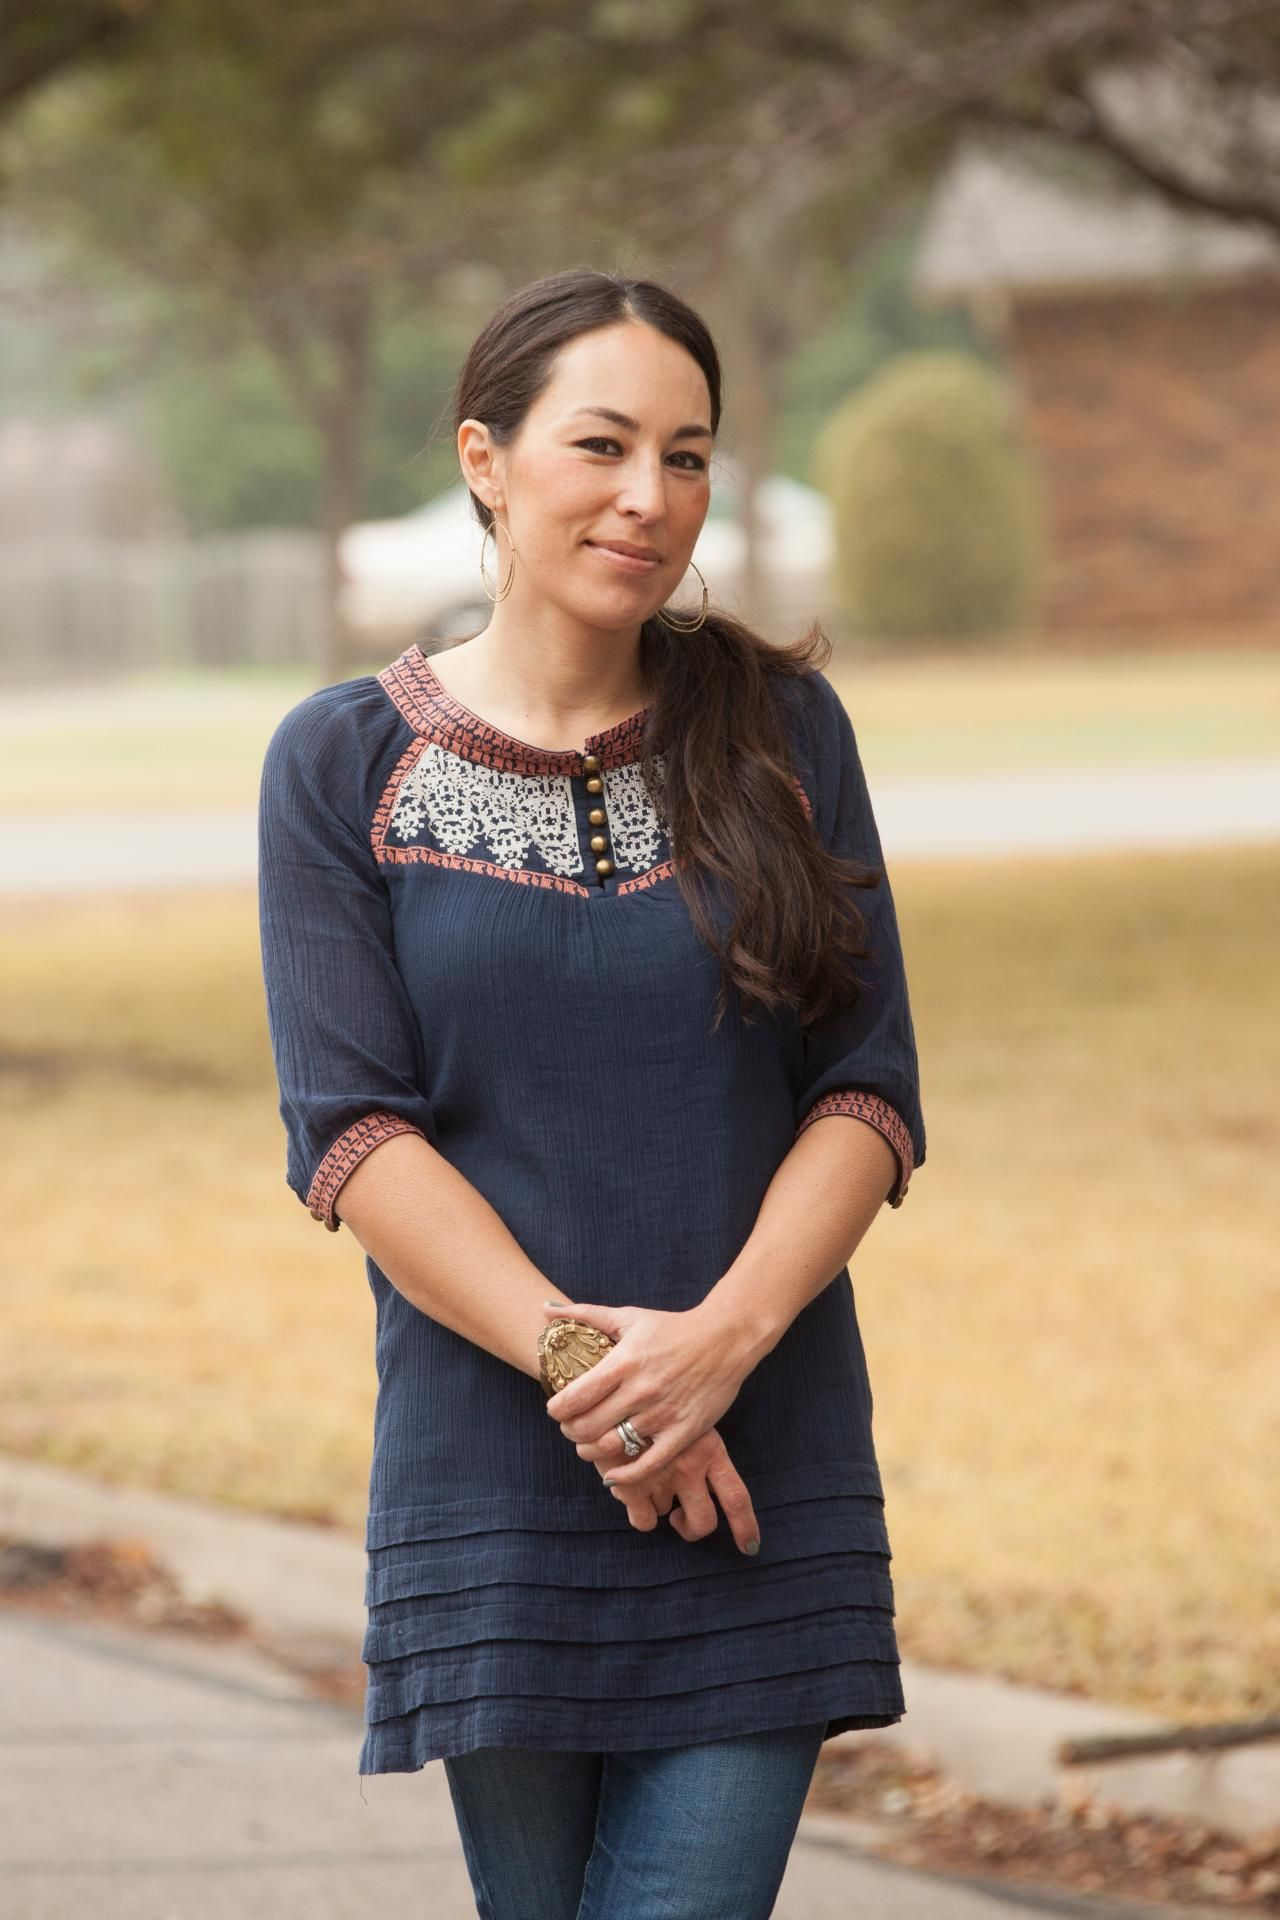 Joanna Gaines Bio Joanna Gaines Fixer Upper Hosts And